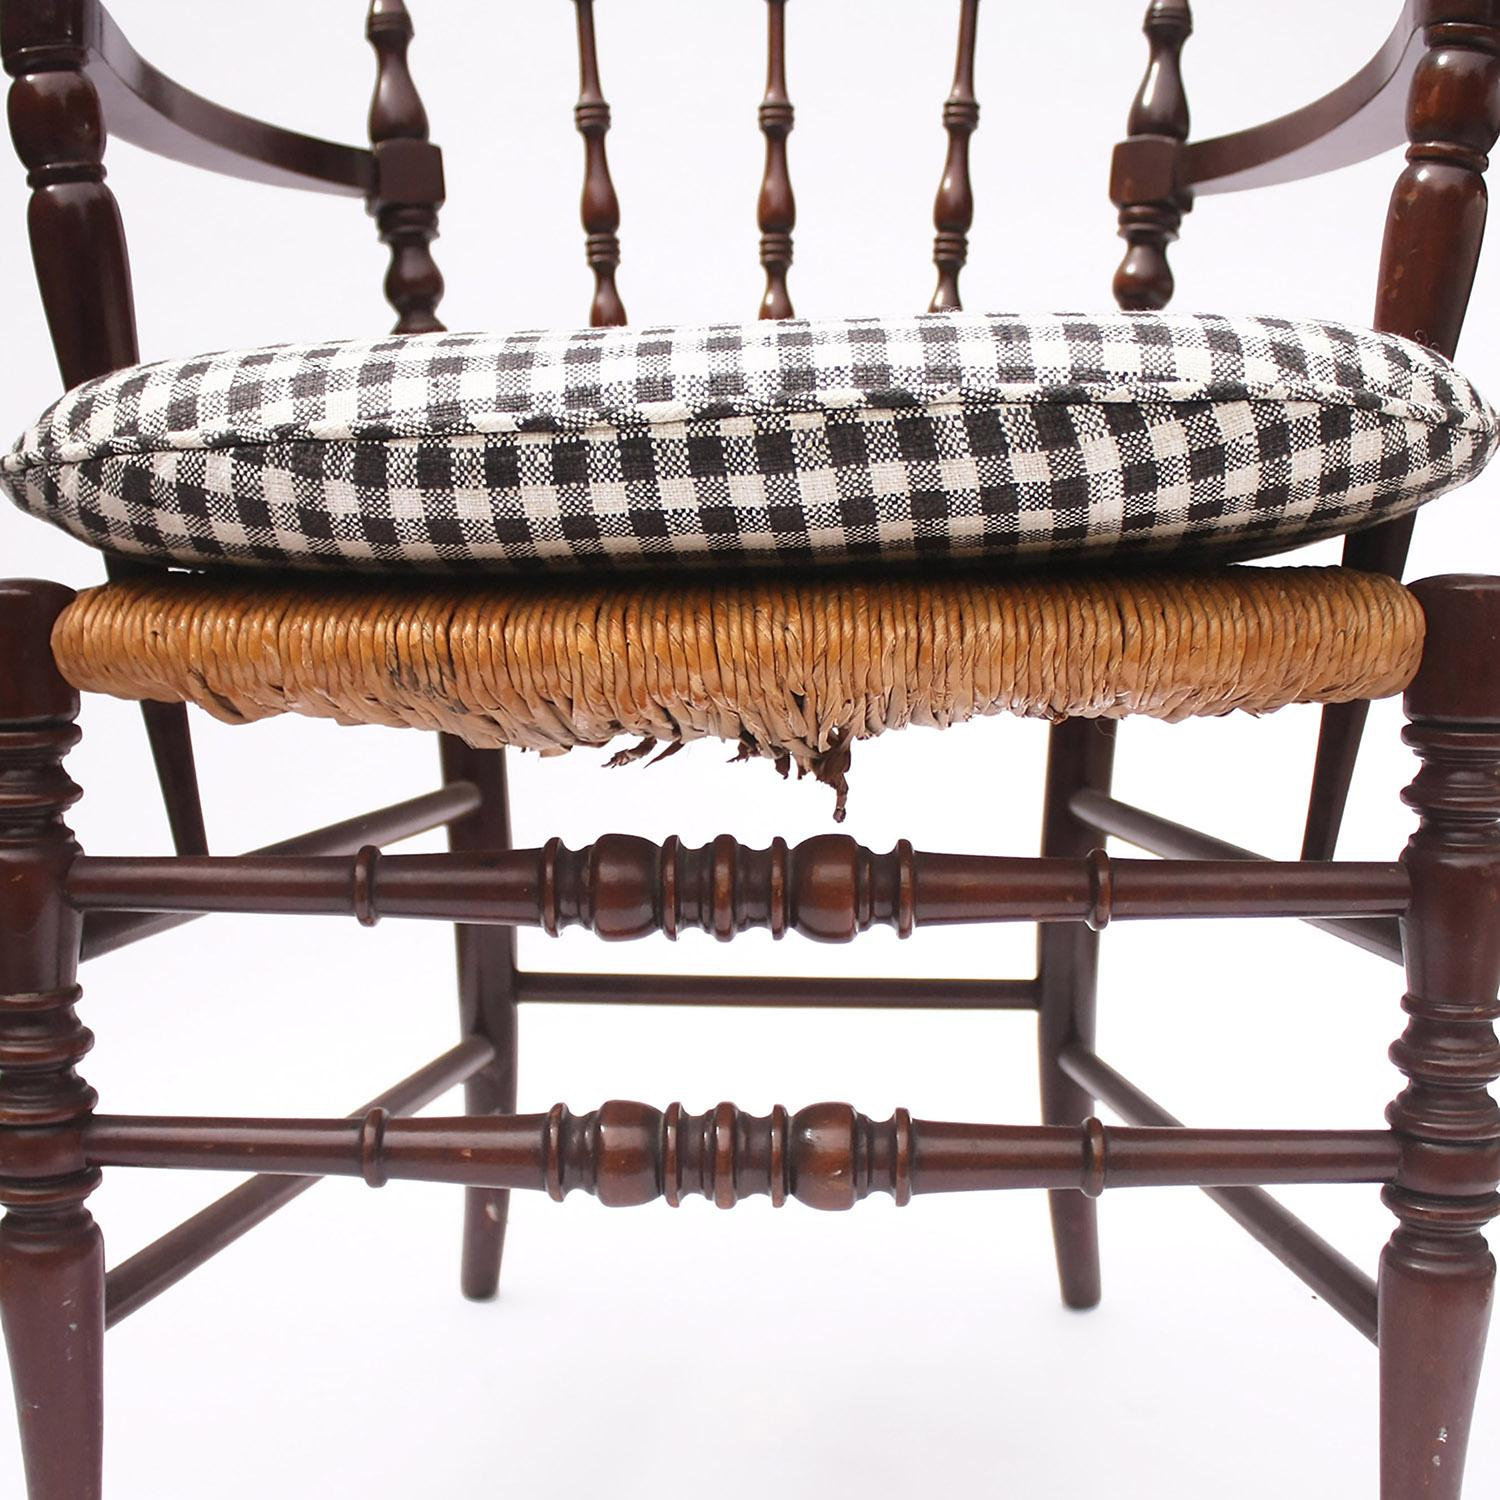 1930s Vintage Gingham Cushion Spindle Armchair